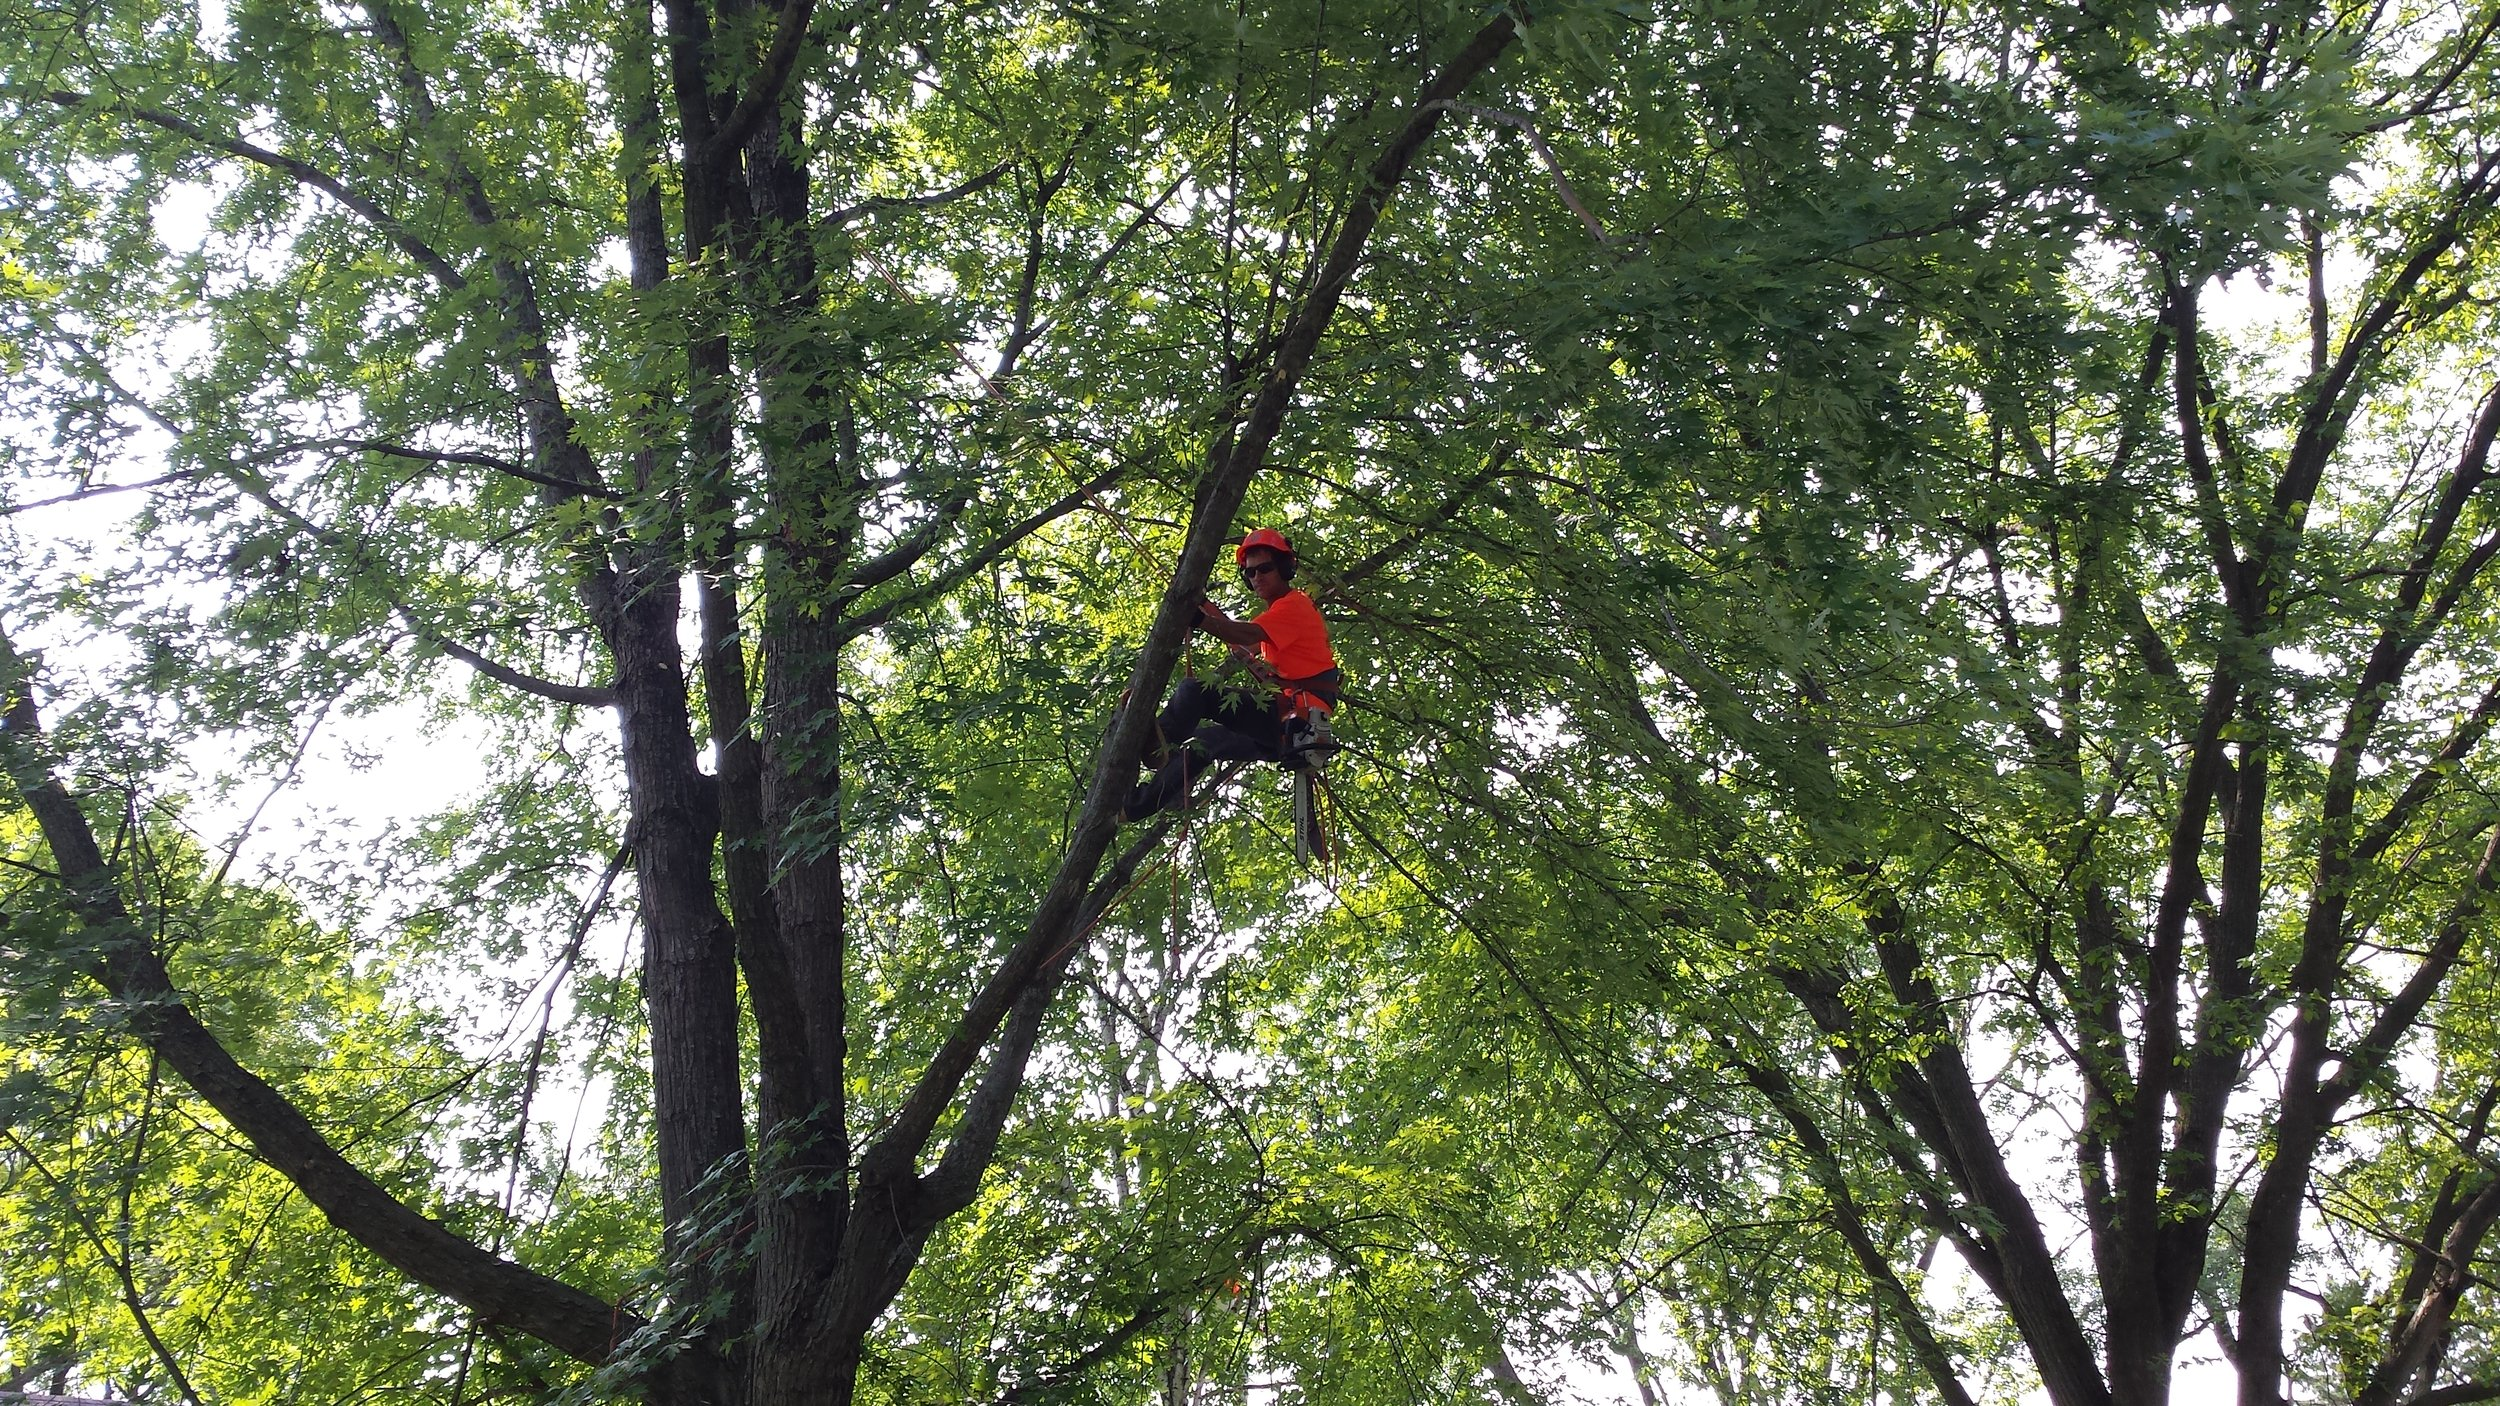 tree trimming - Regular Tree Trimming and Tree Pruning keeps your plants healthy and strong, and keeps your landscape looking fresh and pristine. Click here for more about Tree Trimming Services.